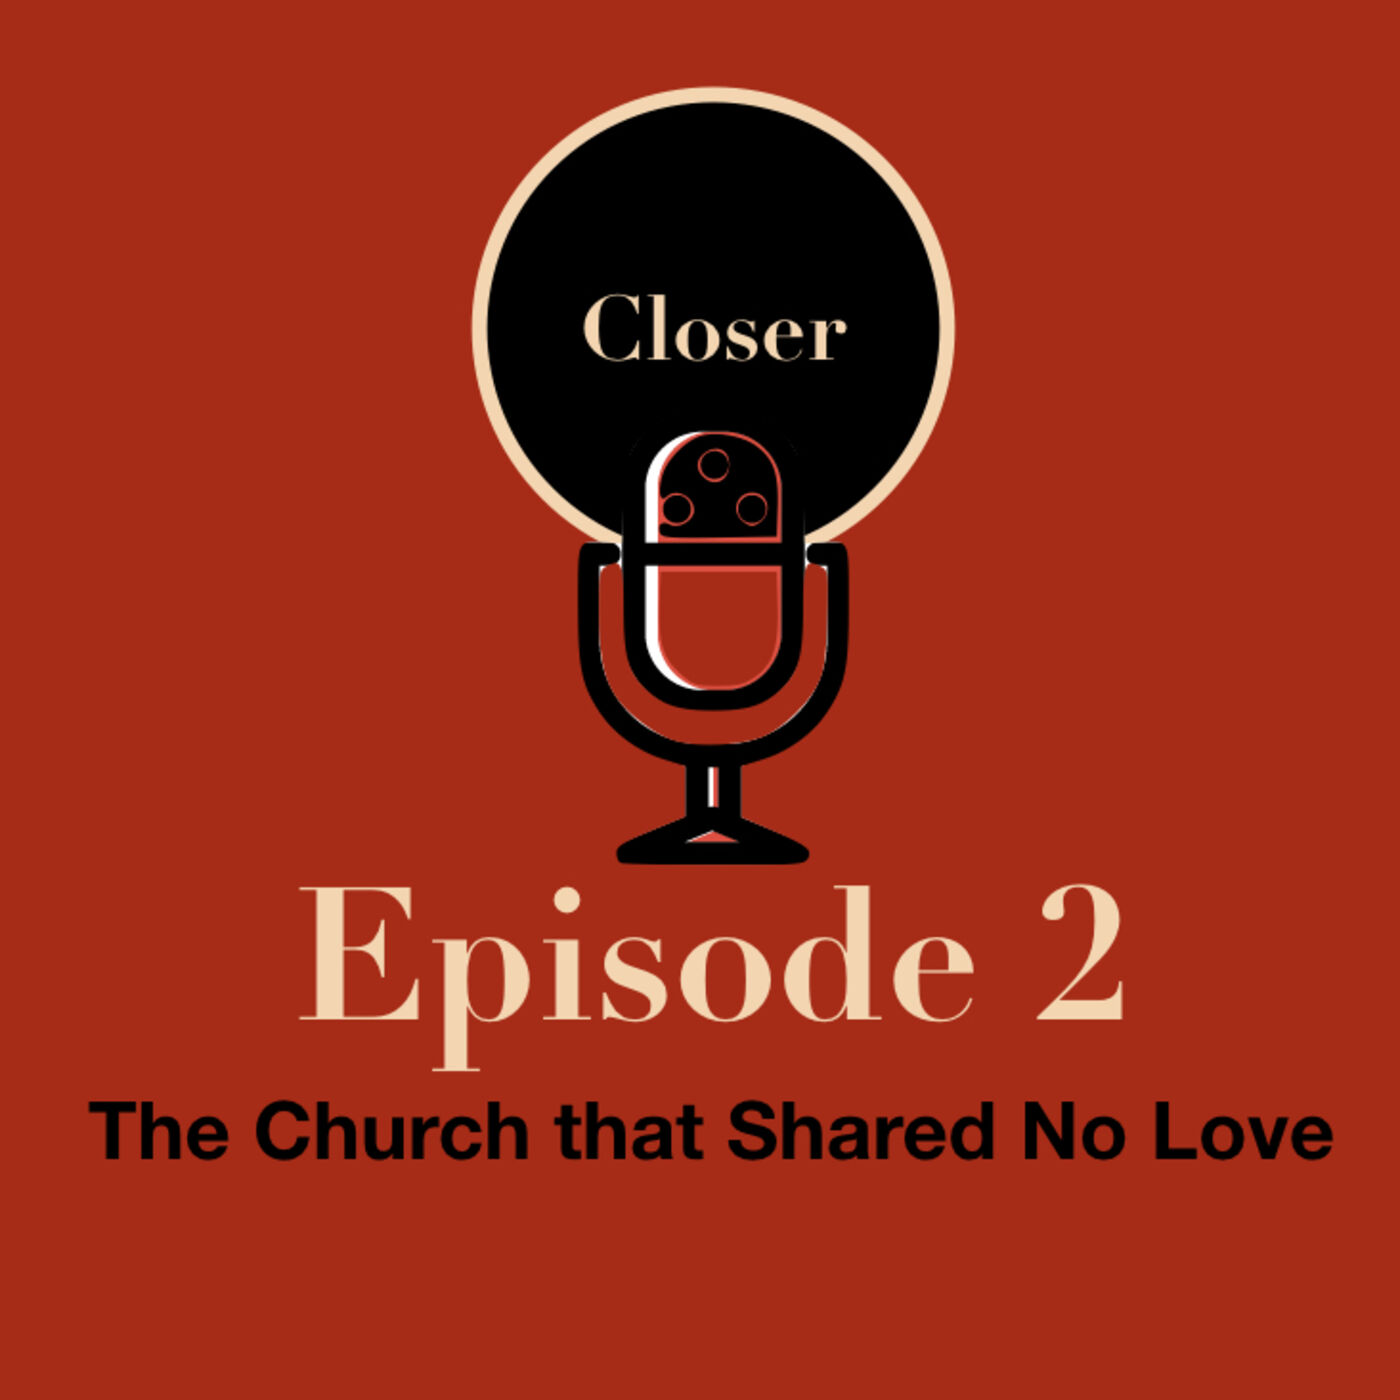 EP 2: The Church that Shared No Love